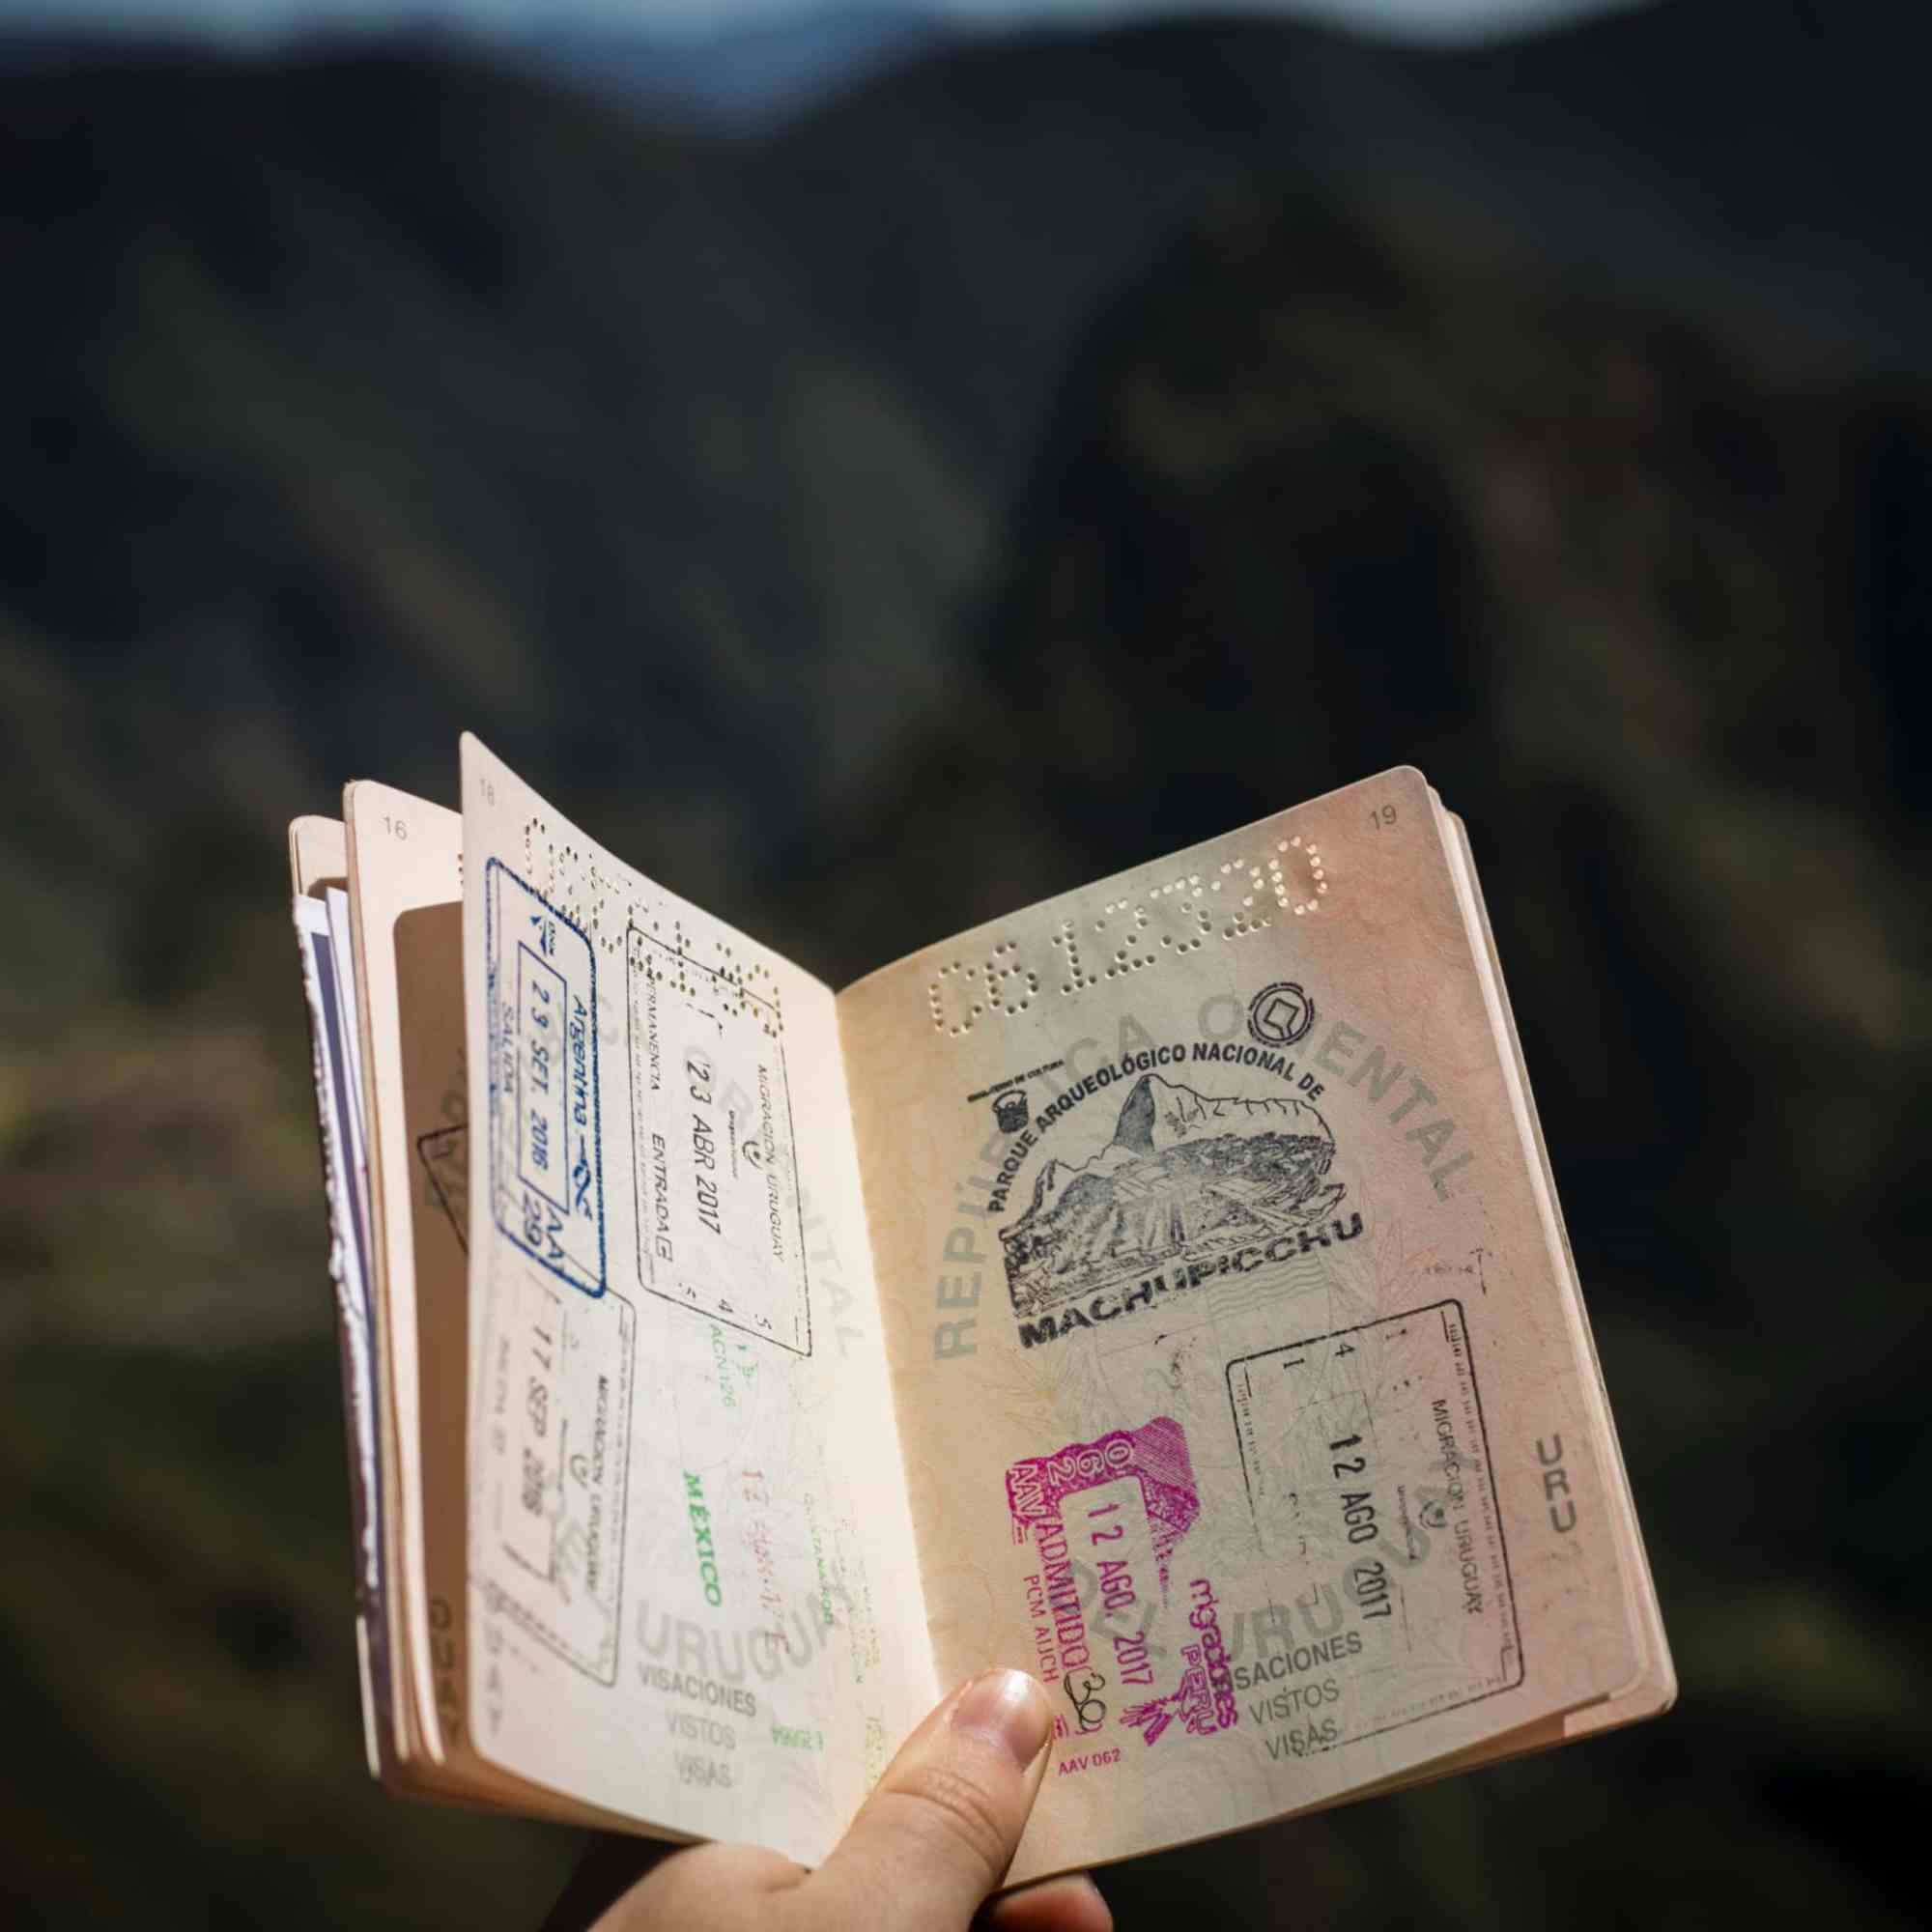 Do you have enough pages left in your passport?